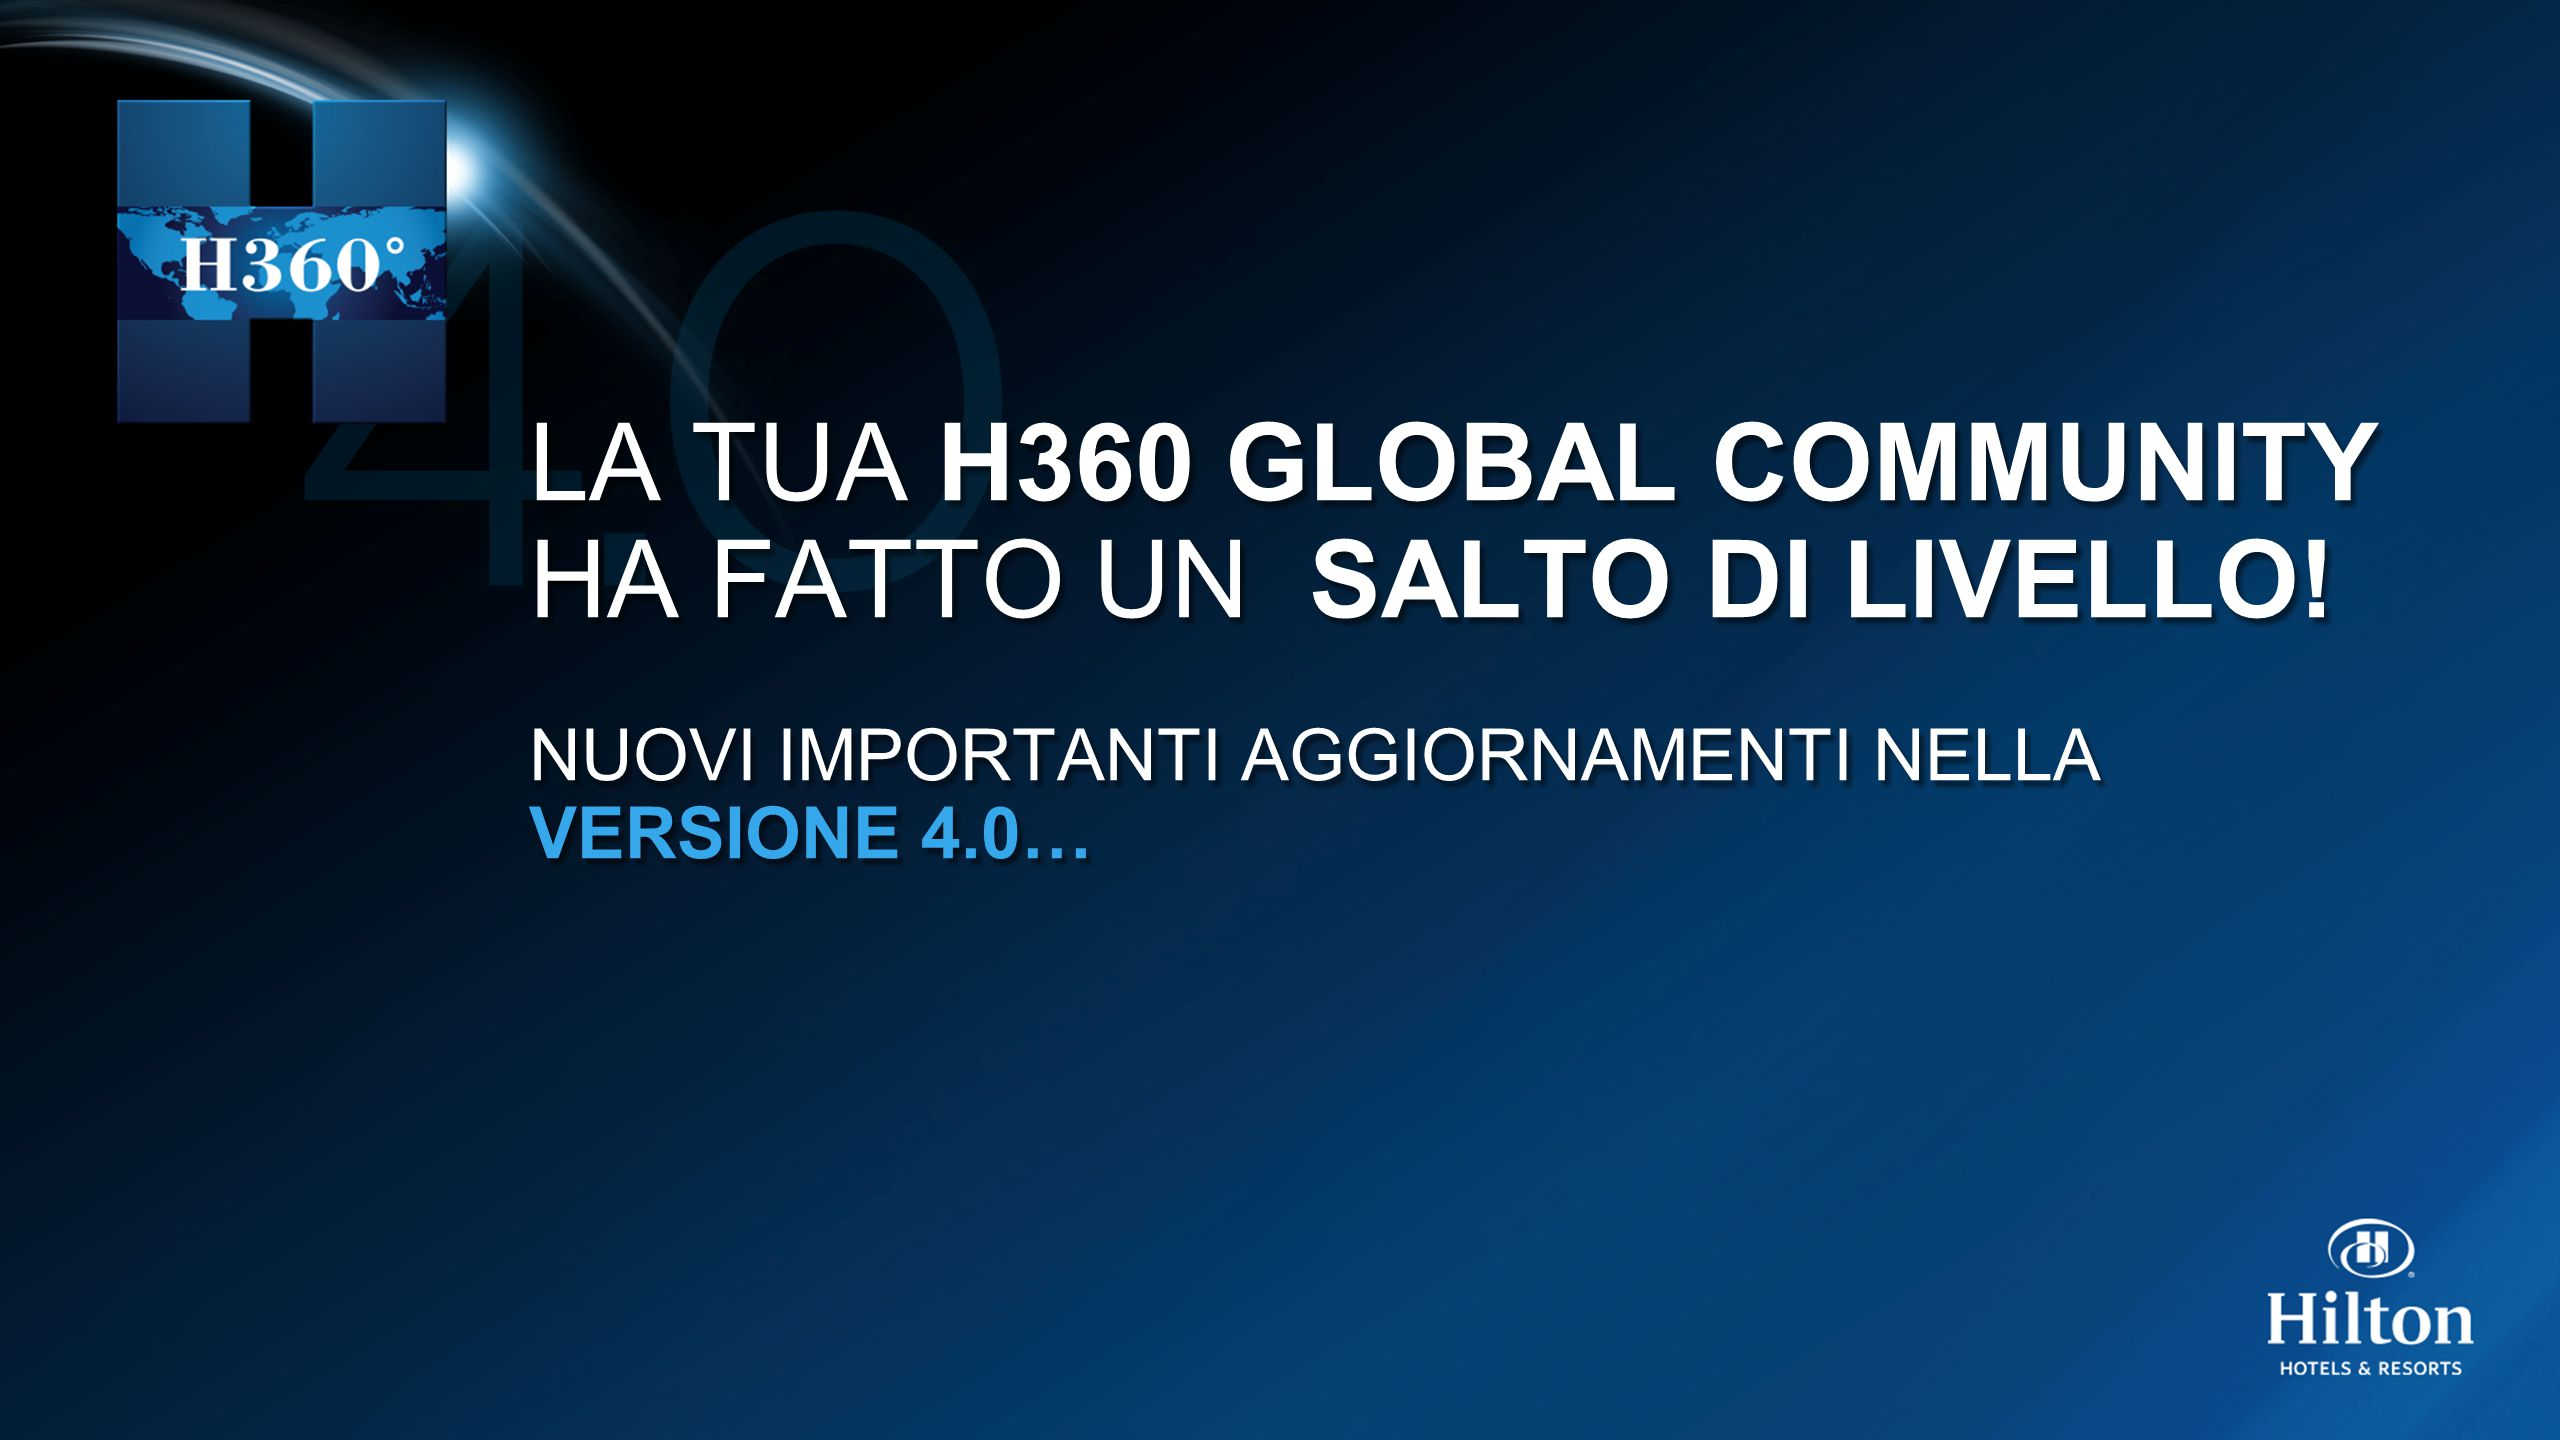 LA TUA H360 GLOBAL COMMUNITY HA FATTO UN SALTO DI LIVELLO.